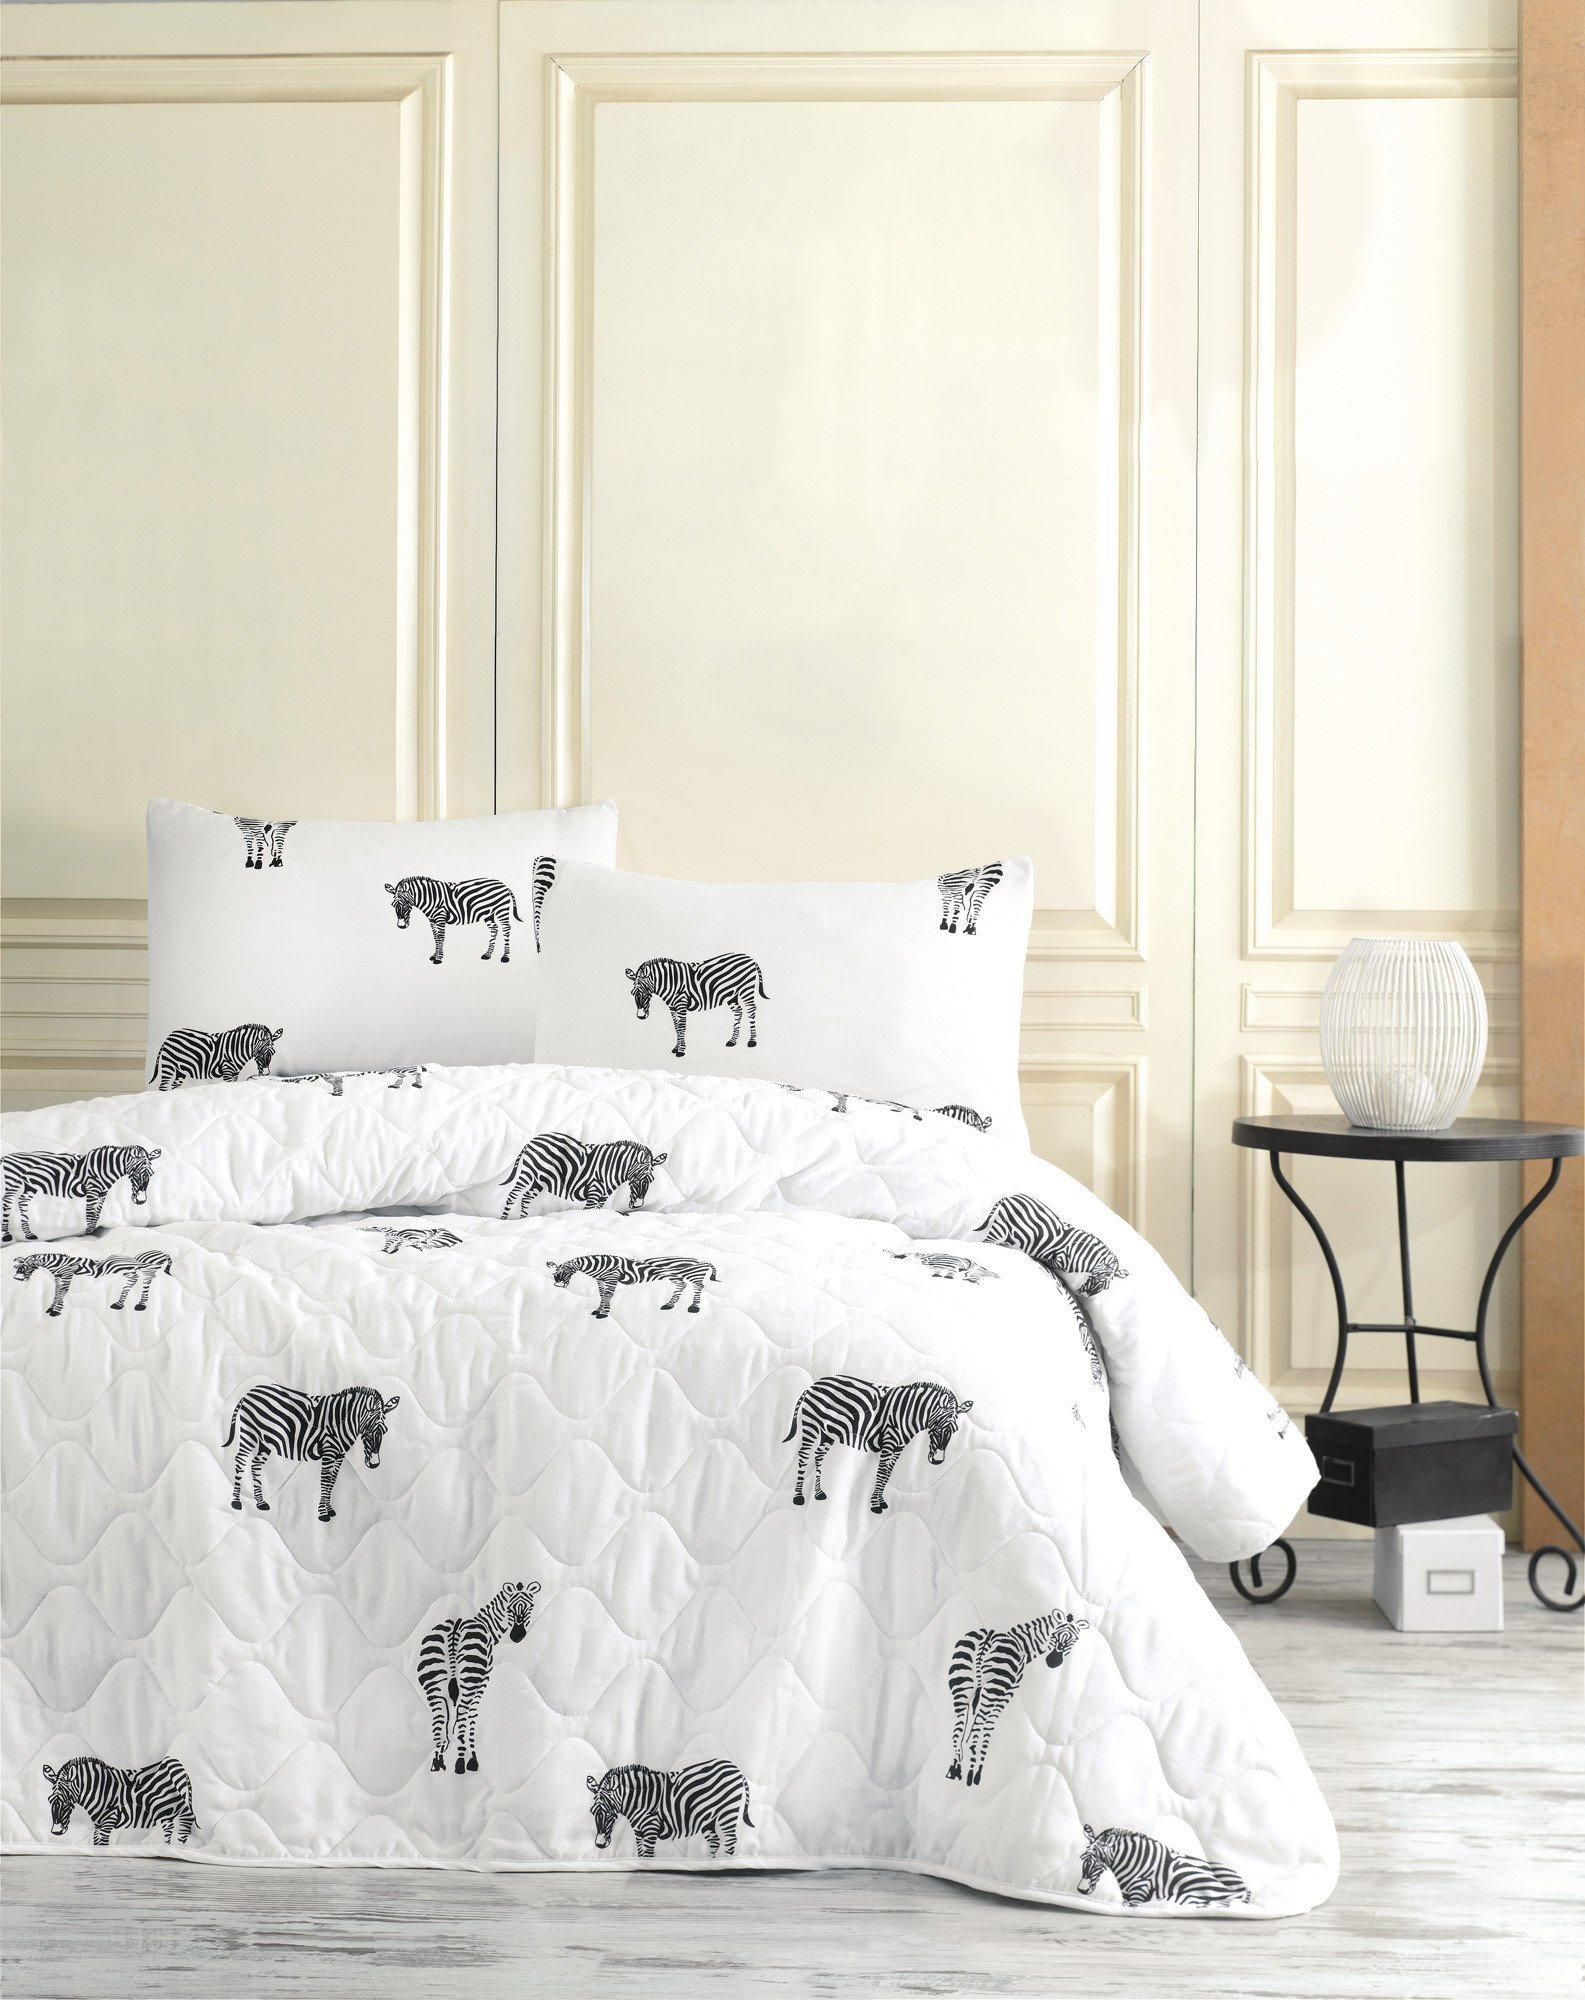 3 Pcs Soft Colored Full and Double Bed Size Bedroom Bedding 65% Cotton Double Quilted Bedspread Set 100% Fiber Filling Padded Soft Relaxed Design Comfortable Pattern Zebra Horse Animal Bedspread Set